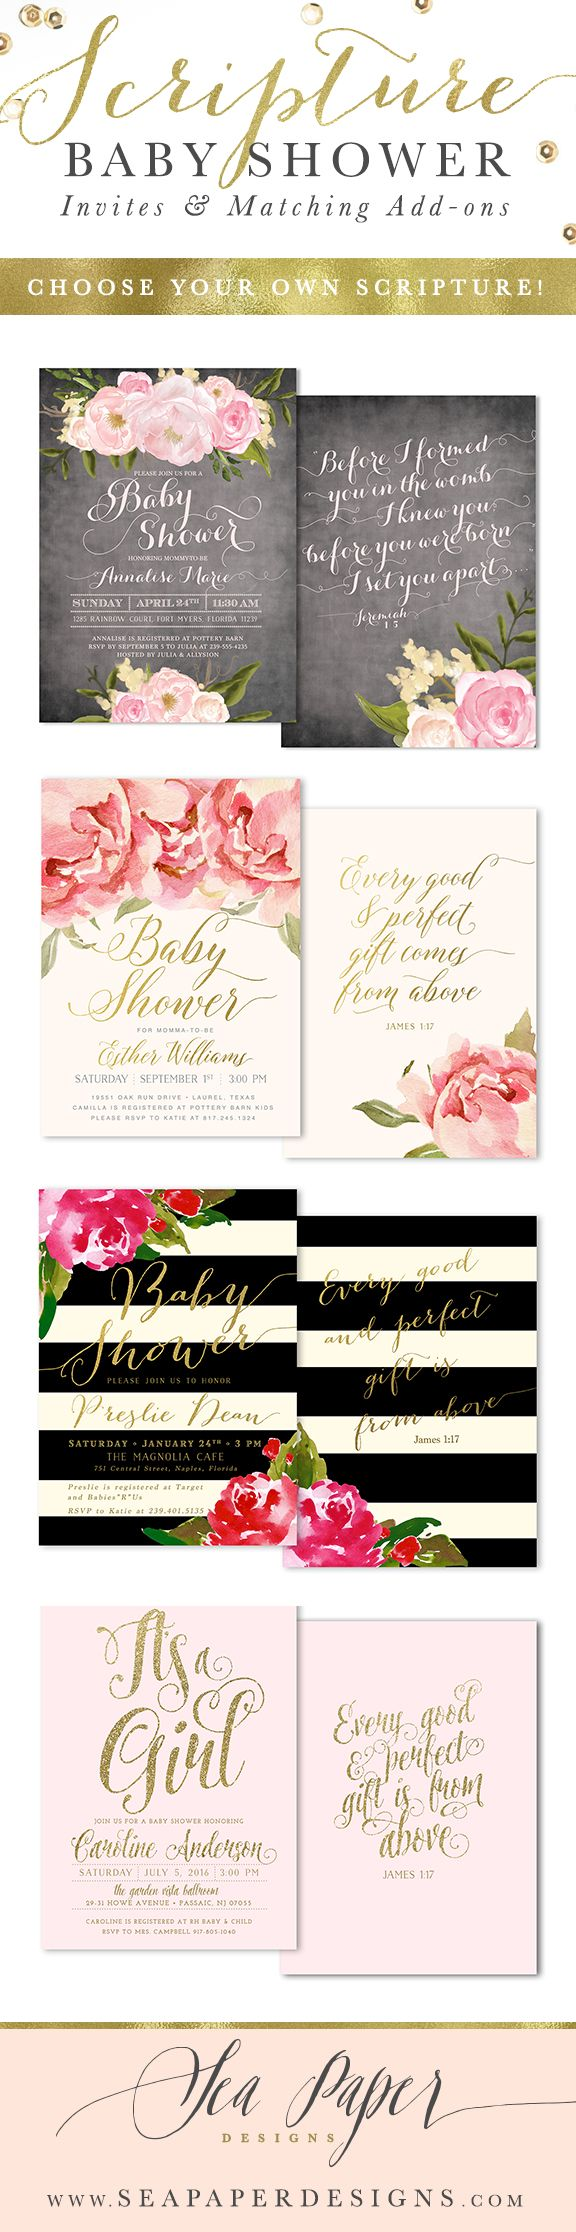 free printable camo baby shower invitations templates%0A Baby Shower invitations with scripture on the back  Made for any baby shower  event